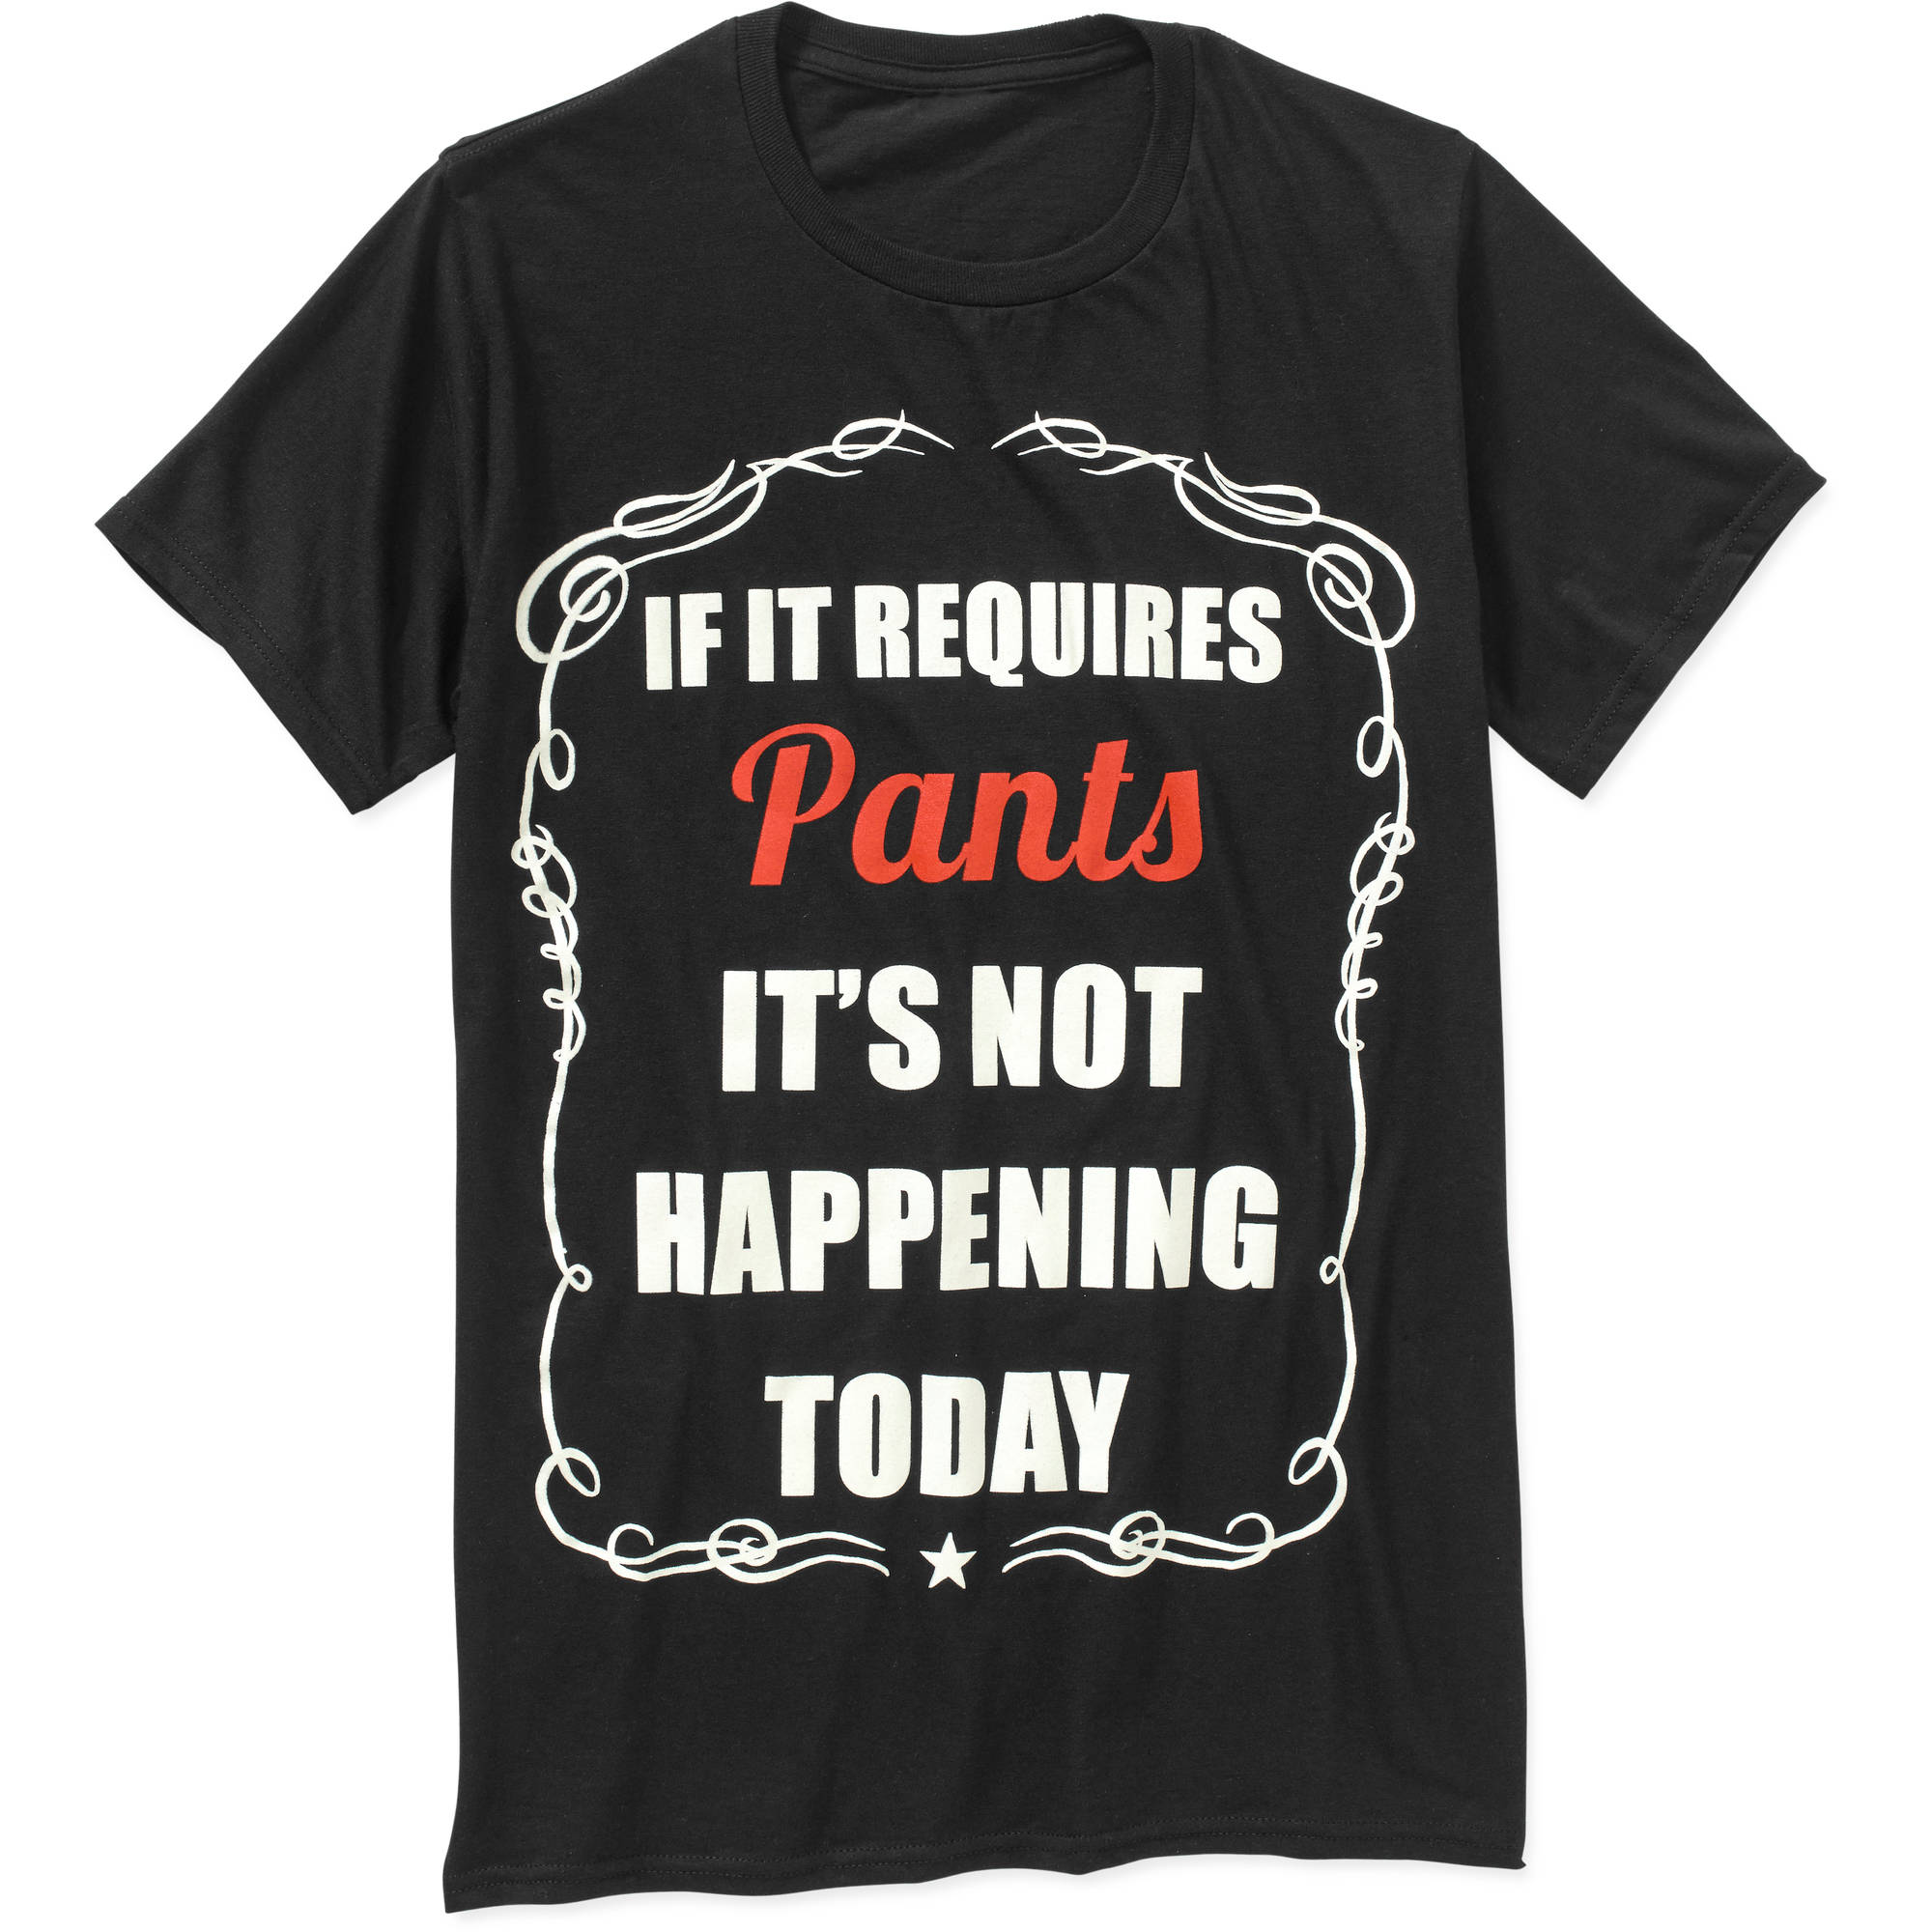 If It Requires Pants Big Men's Graphic Tee